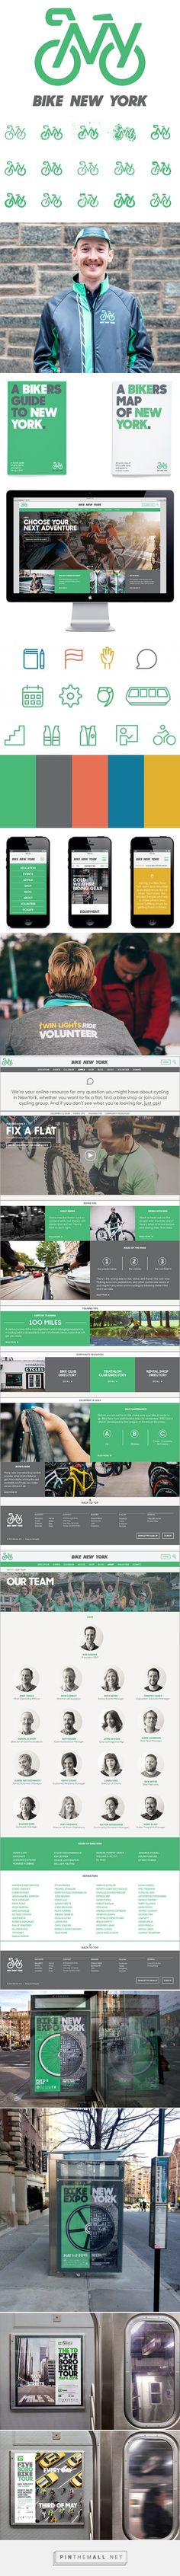 New Work: Bike New York | New at Pentagram - created via http://pinthemall.net